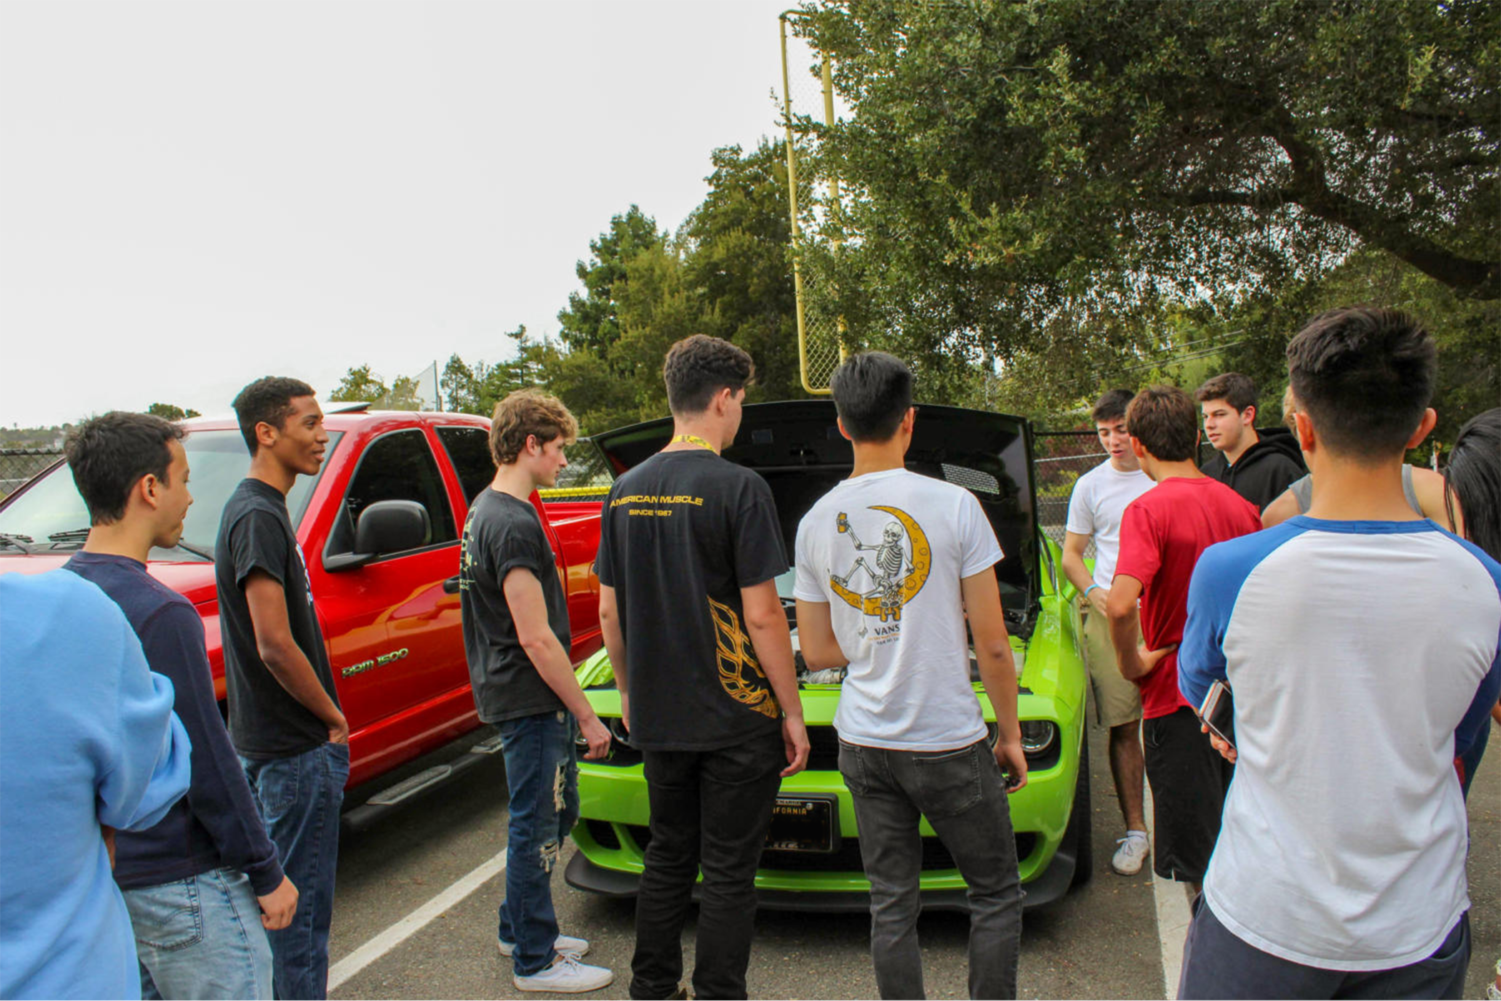 Students gather around and admire Stephen Panagiotopoulos' green Challenger Hellcat.